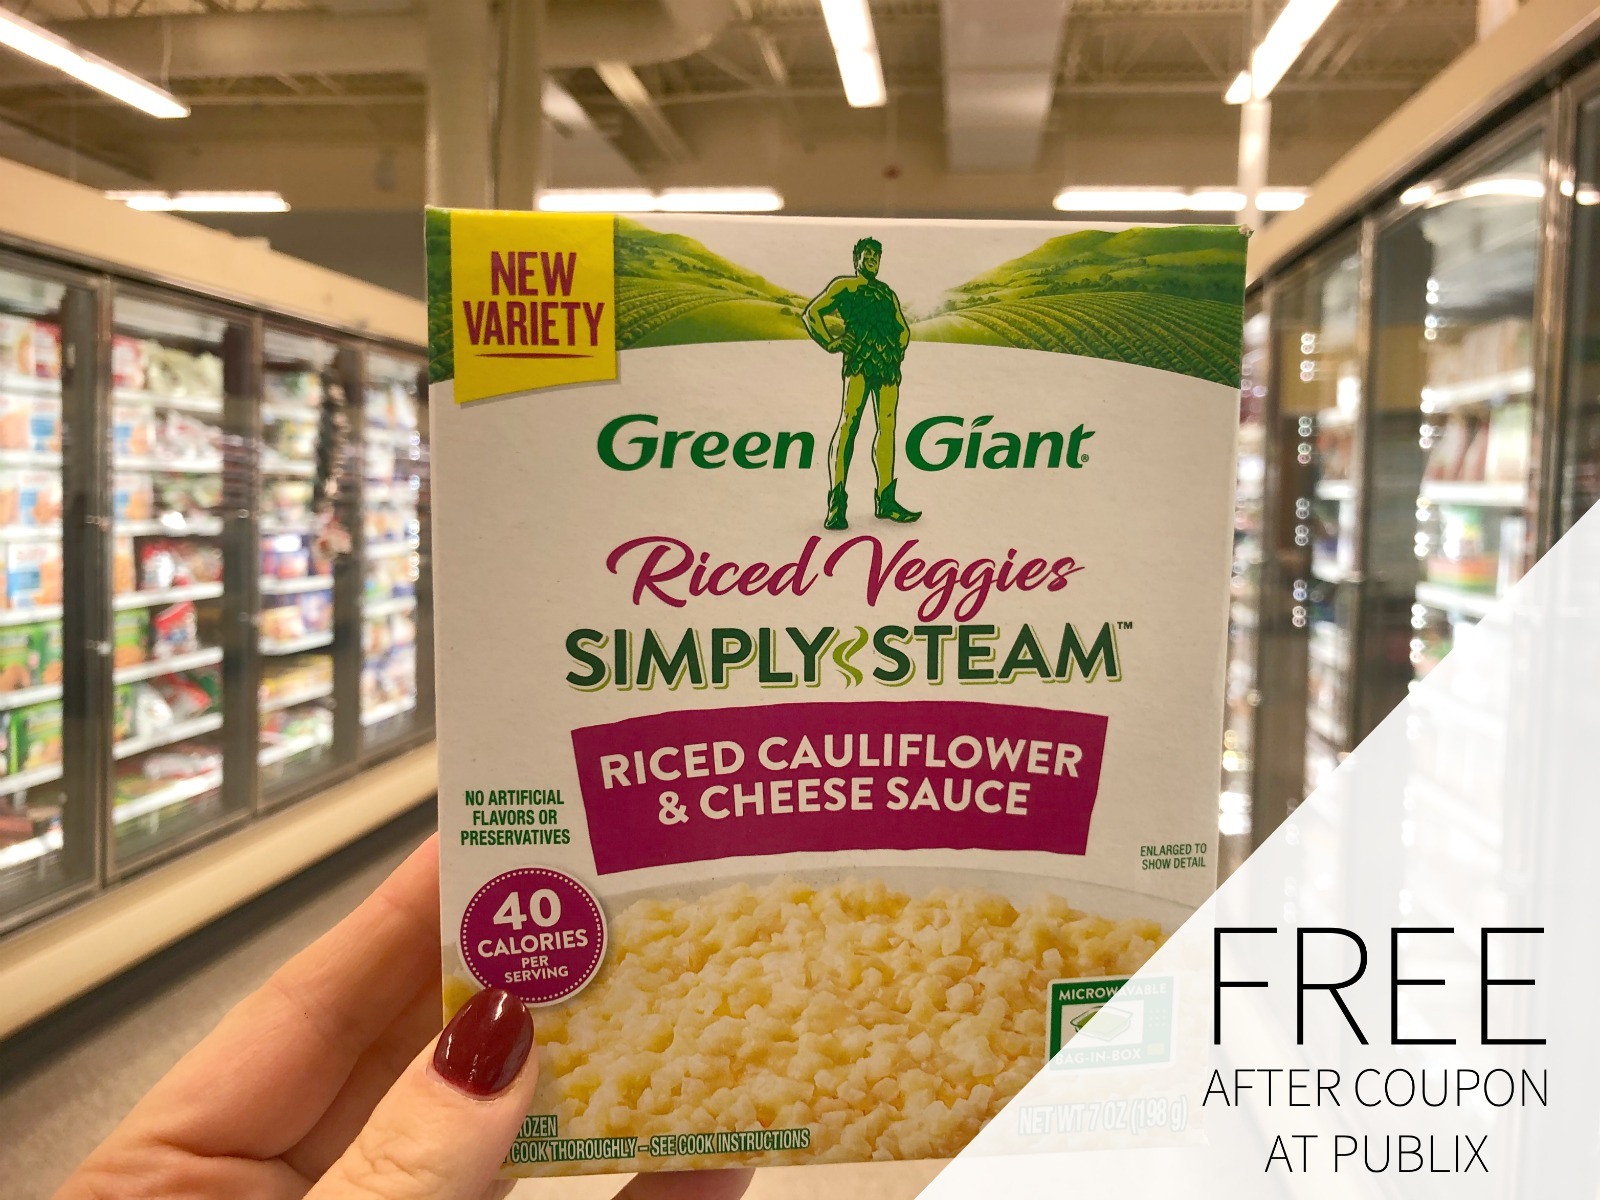 Nice Deals On Green Giant Veggies At Publix - Riced Veggies Only $1.59 on I Heart Publix 2